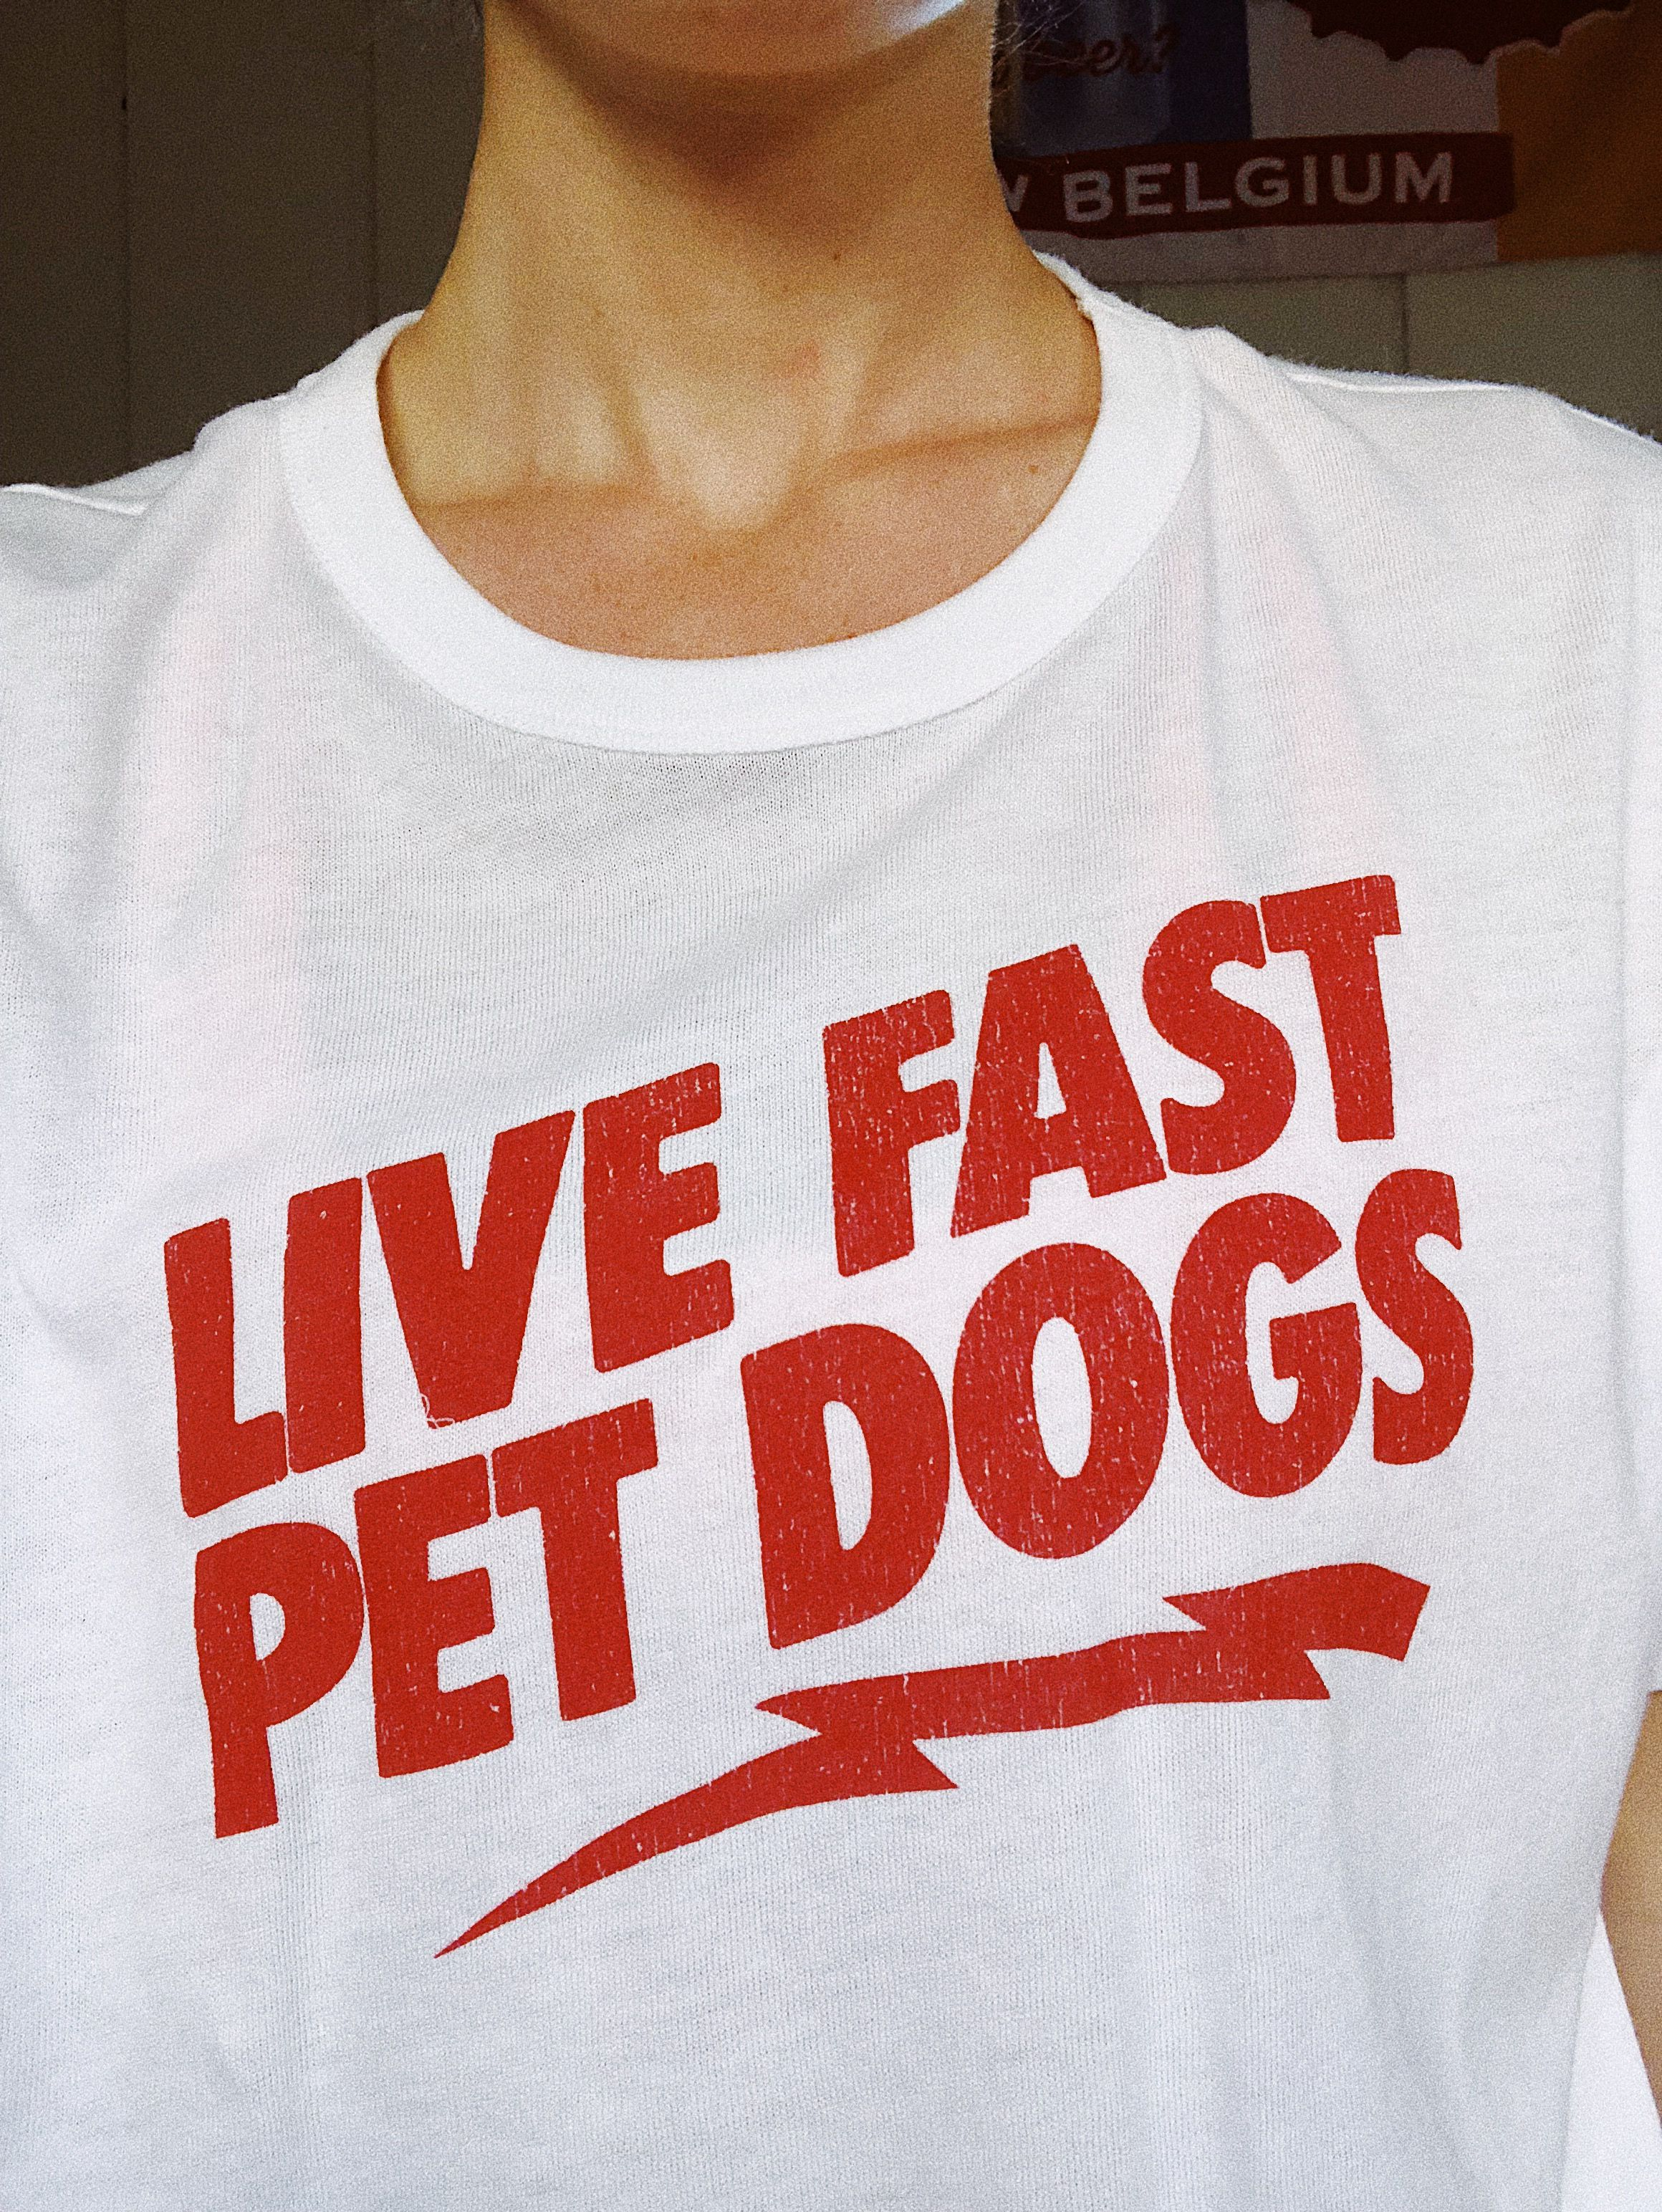 e04ab118b08c Live fast, pet dogs vintage inspired graphic t-shirt #graphictee #dogs  #vintage